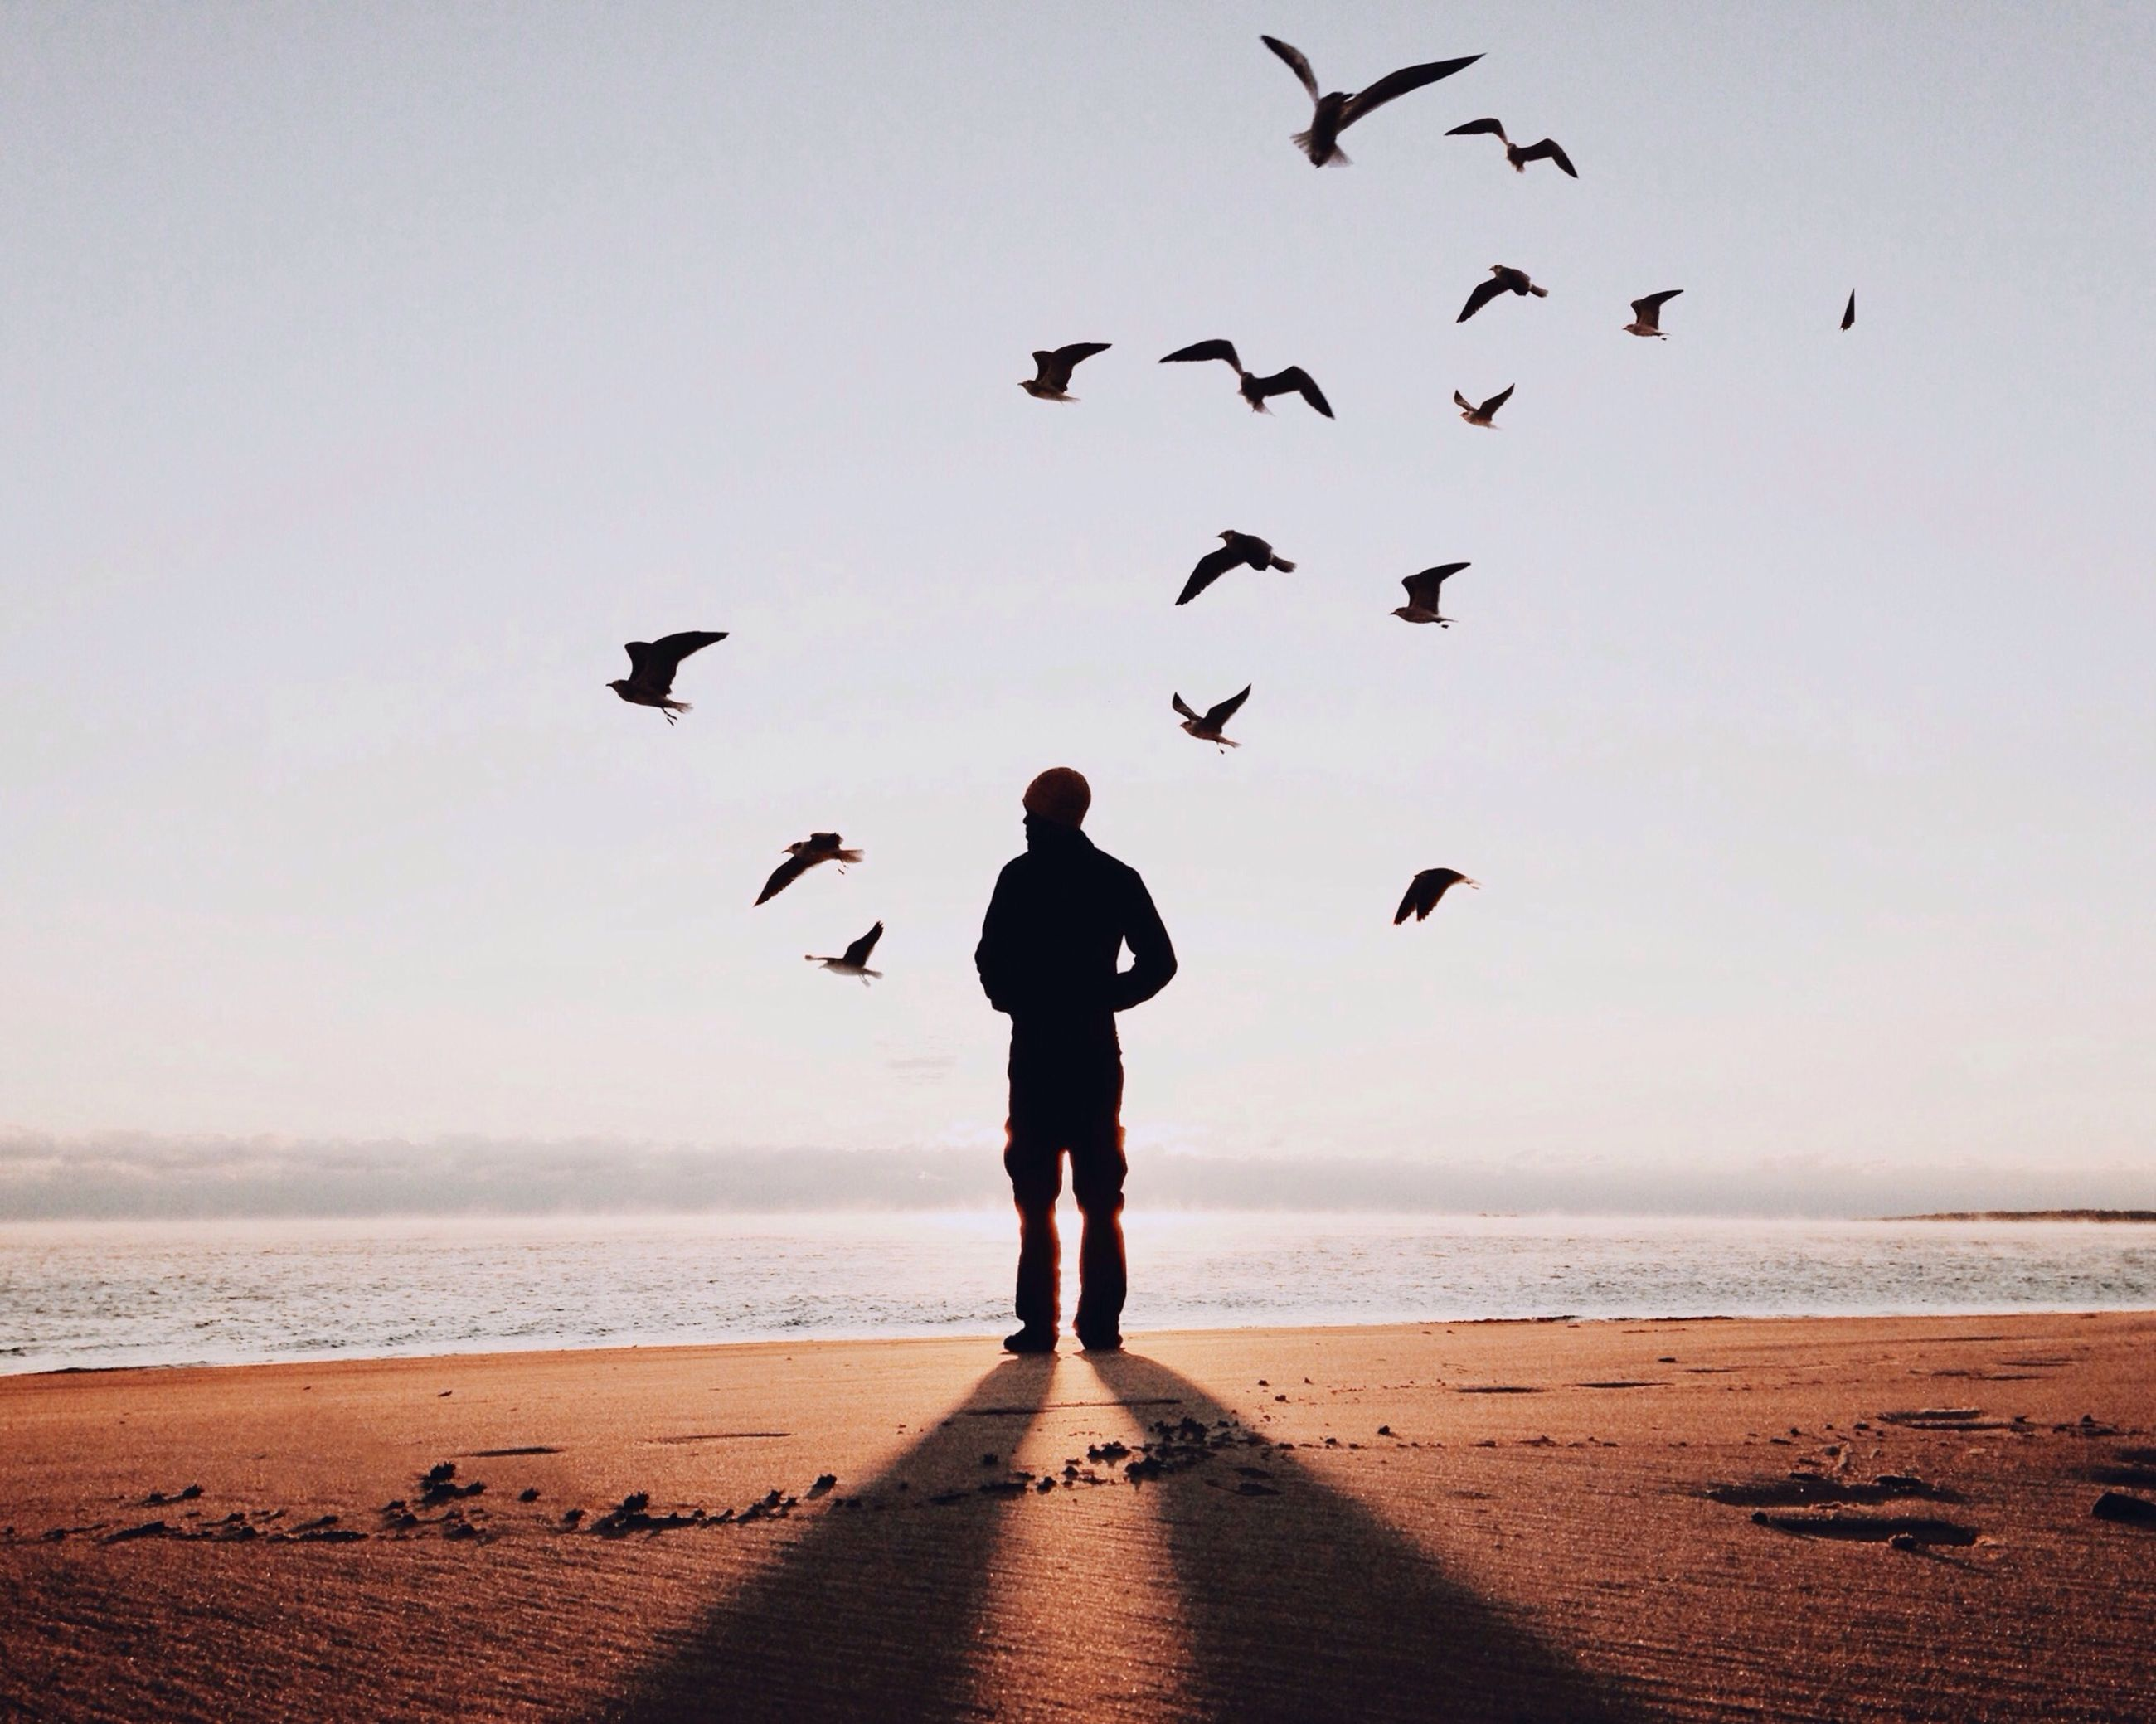 sea, beach, horizon over water, bird, water, shore, sand, animal themes, flying, silhouette, sky, full length, animals in the wild, scenics, tranquil scene, tranquility, nature, beauty in nature